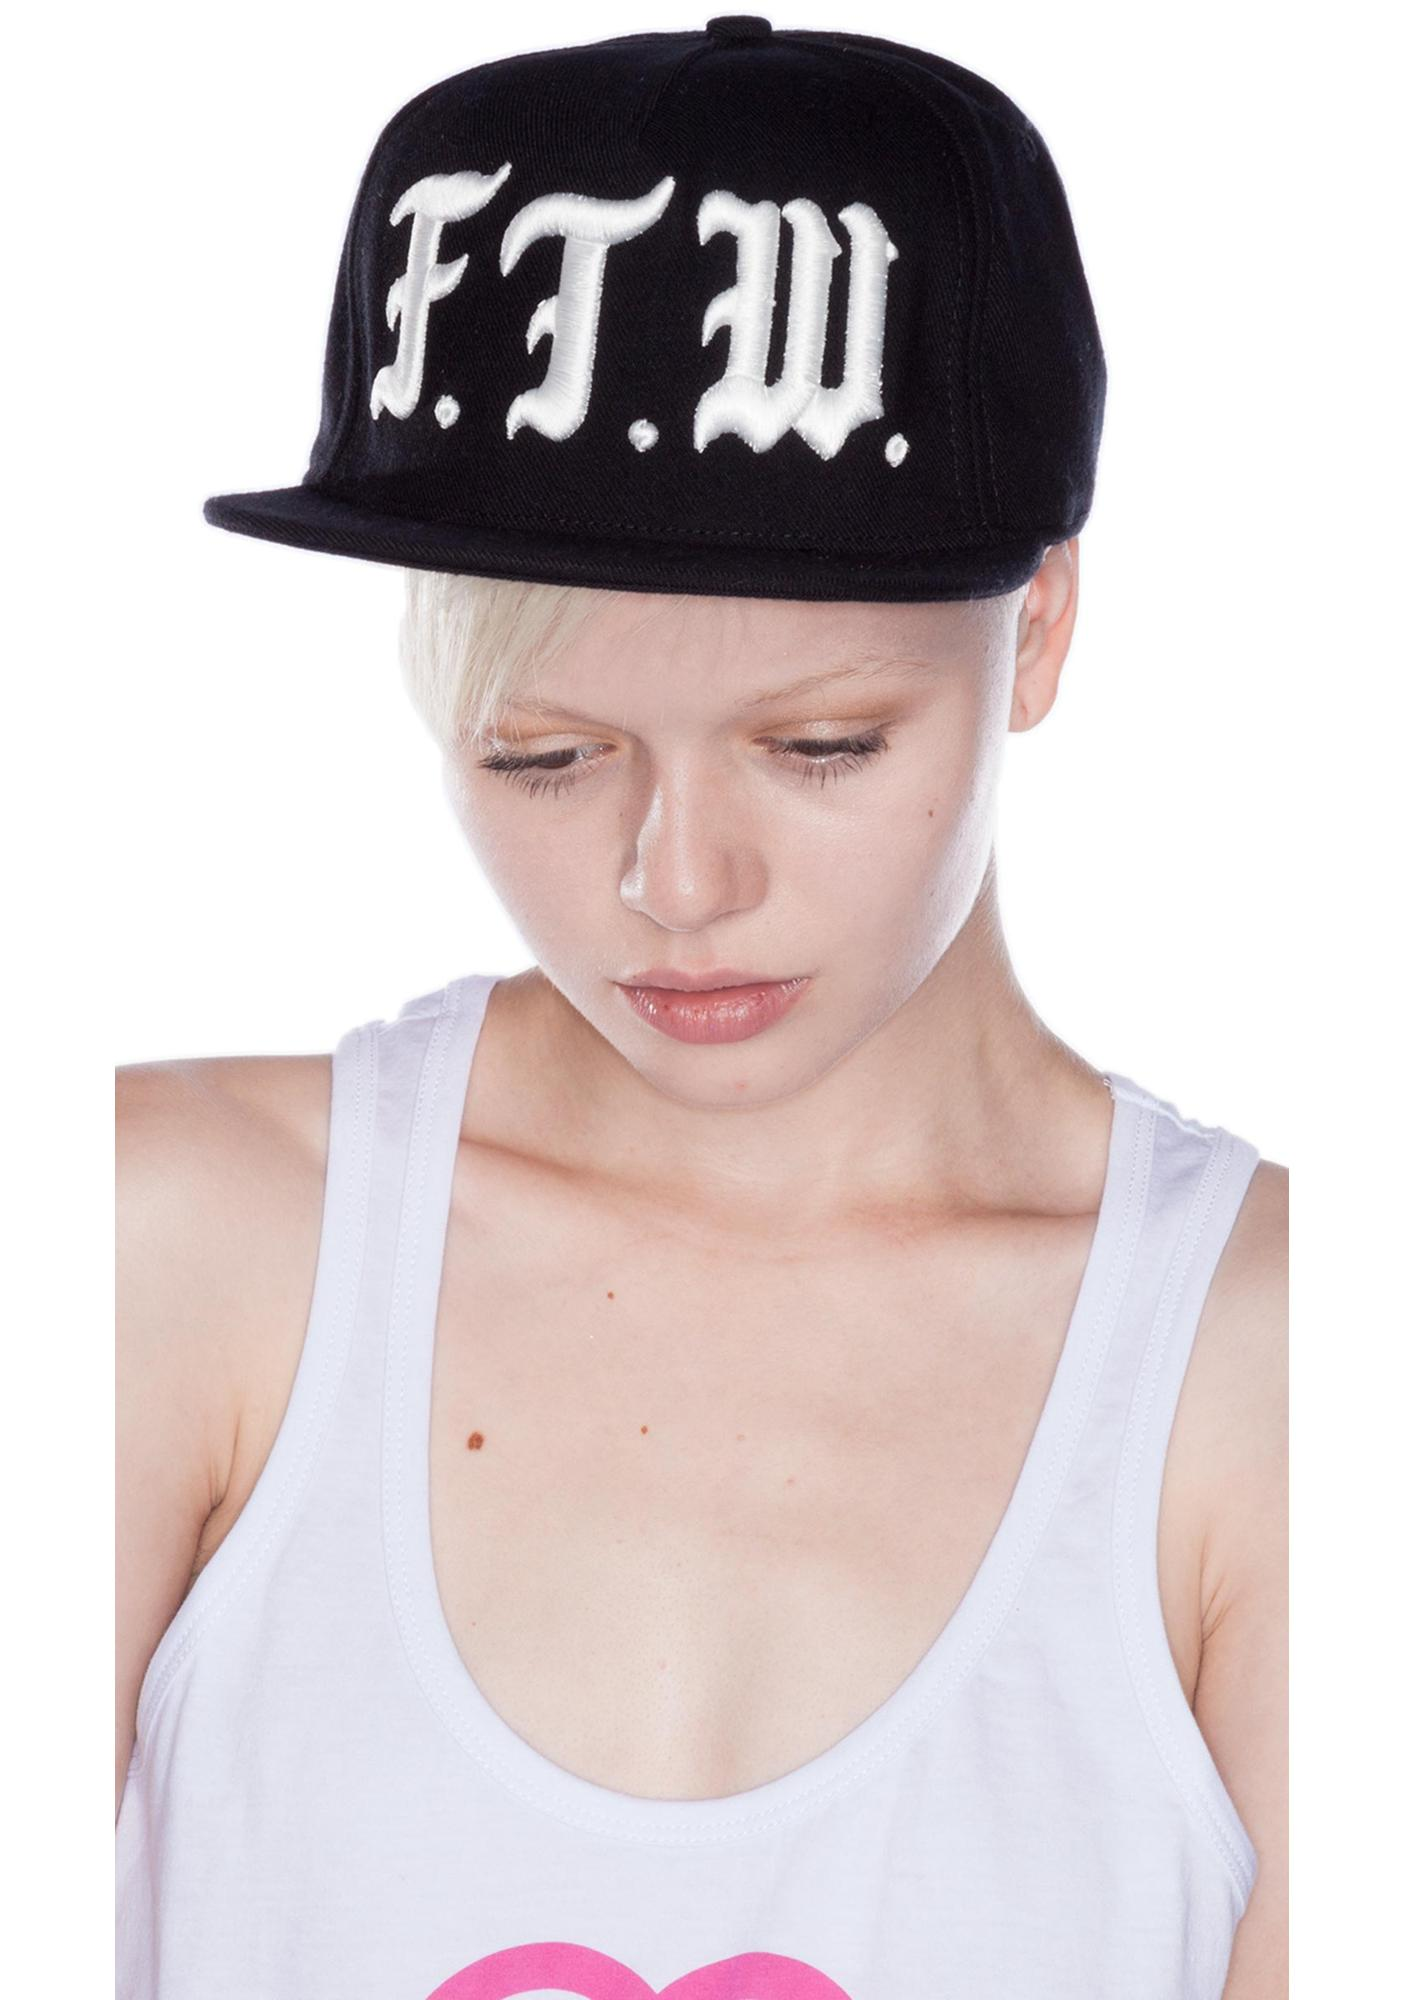 13 Unif Clothing Complaints And Reviews Ed Consumer